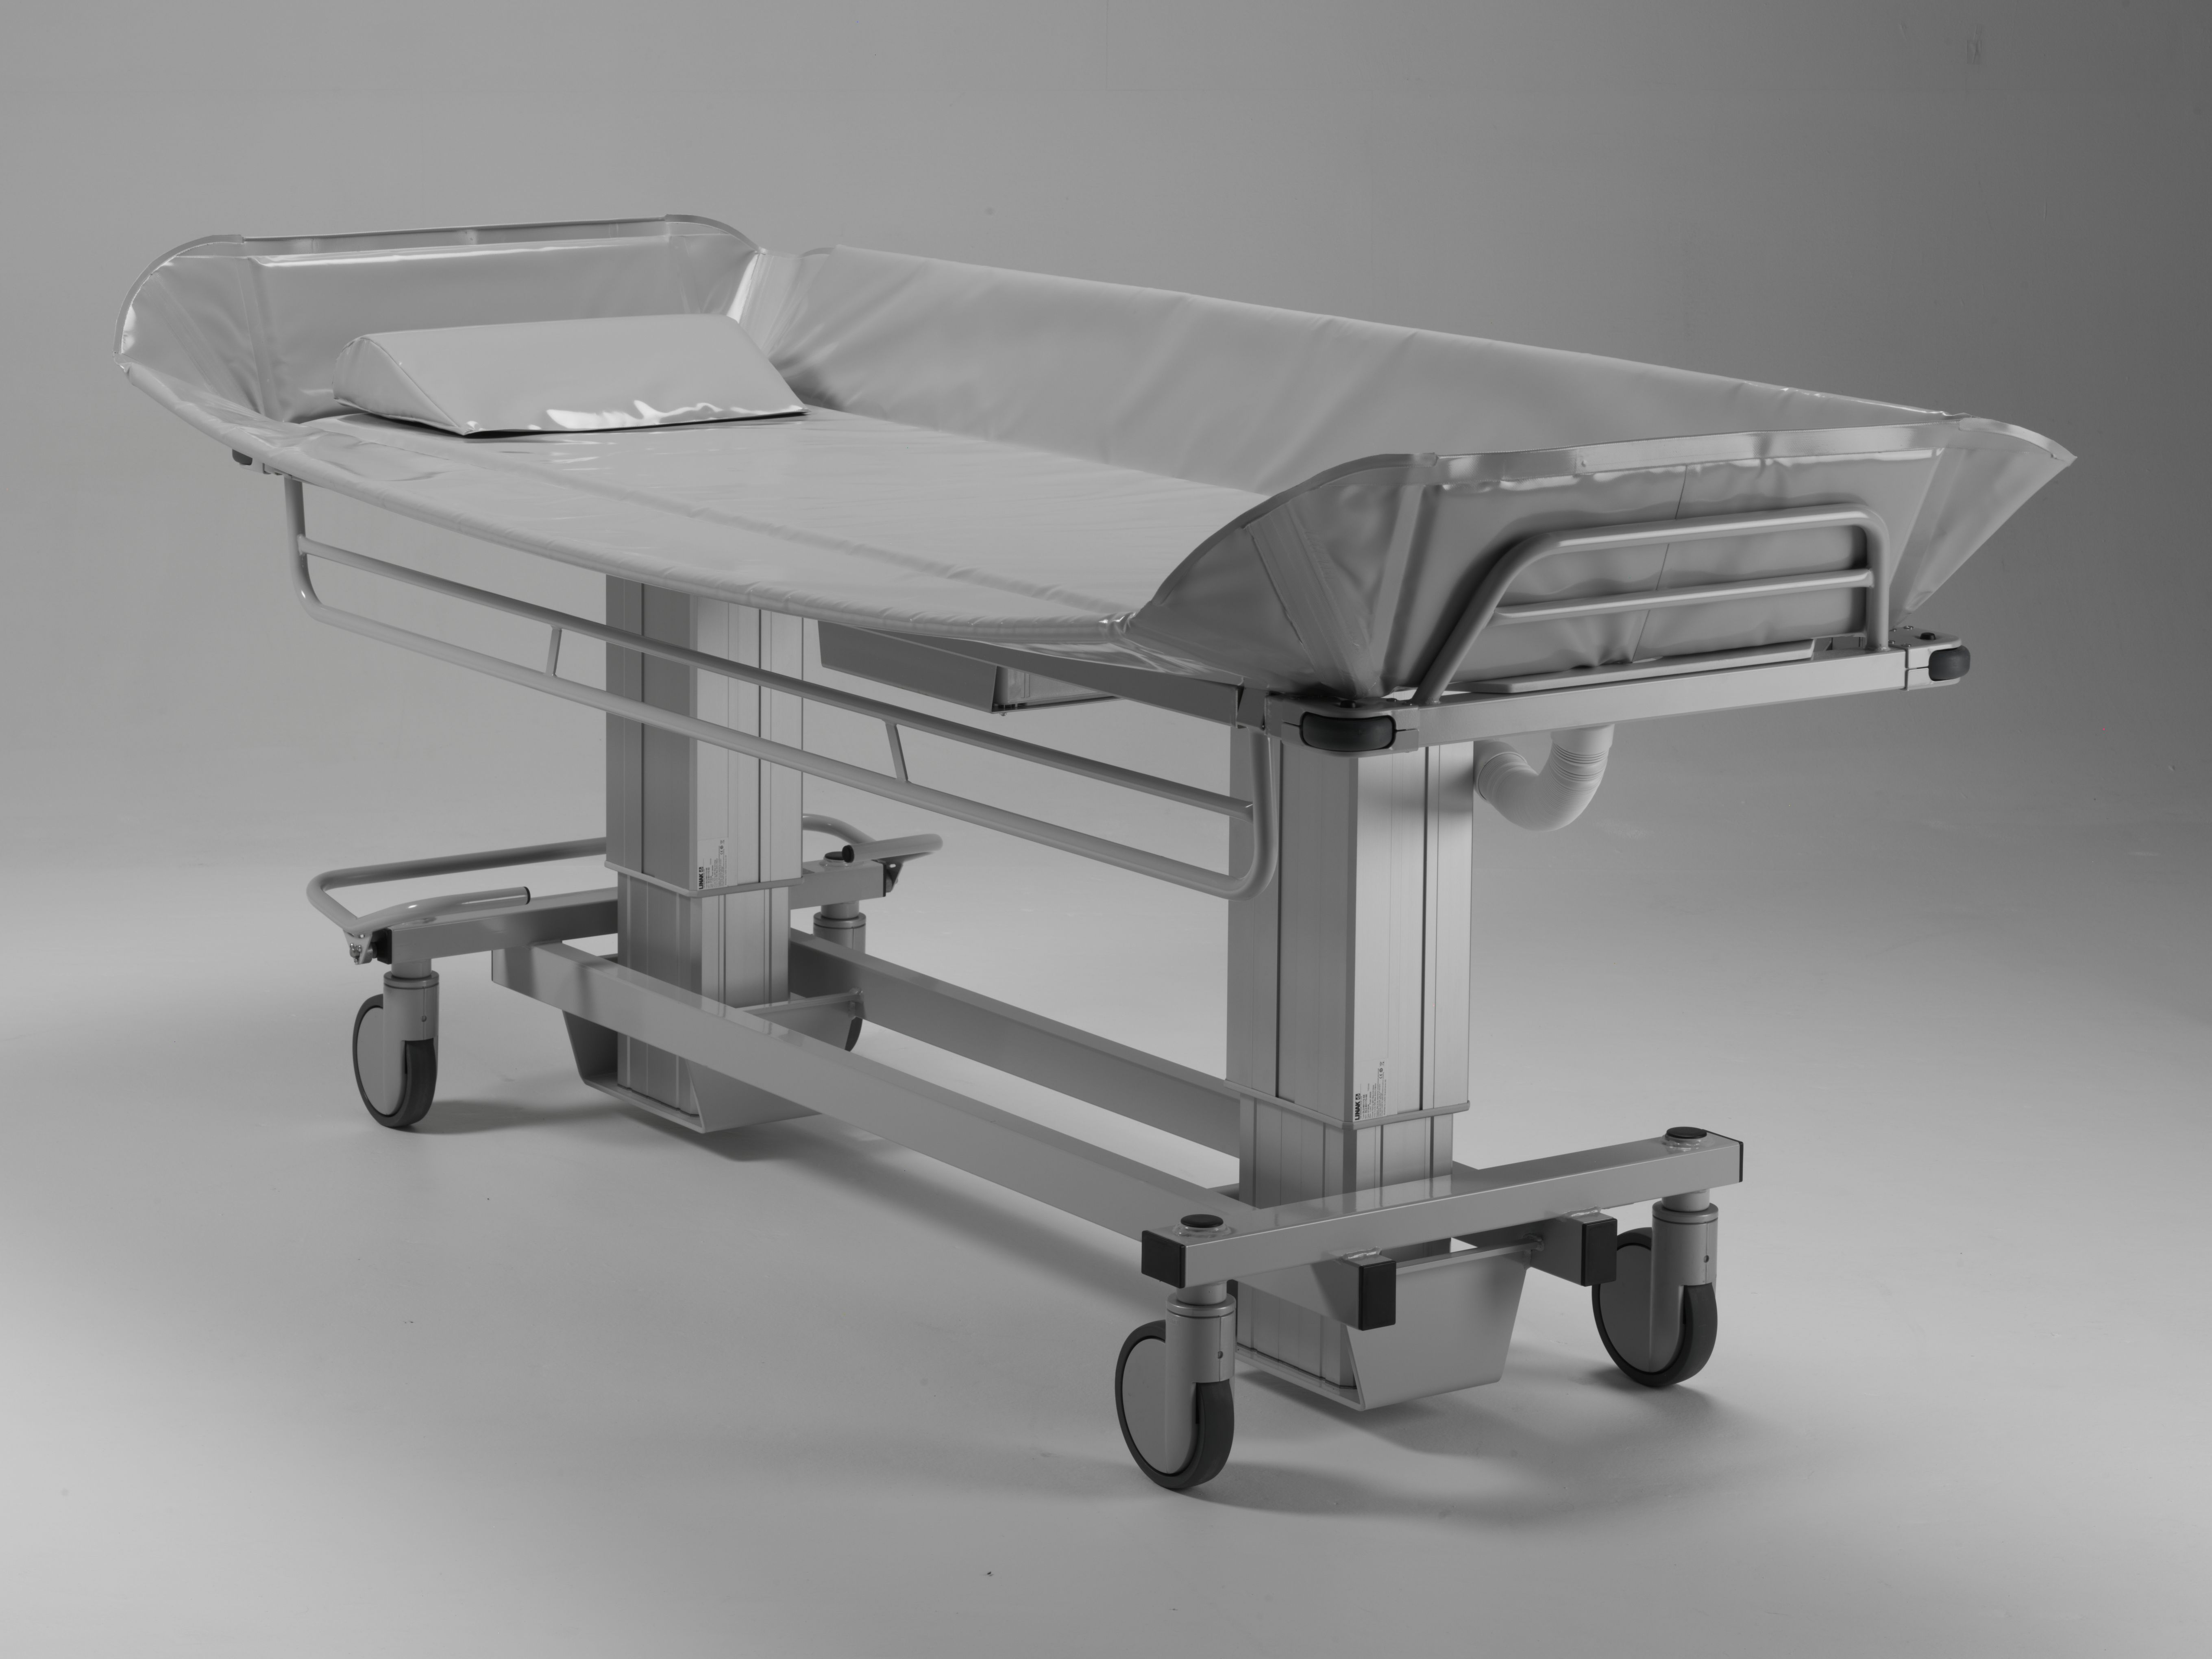 shower patient catalog stretcher transport attachment taitung hospital trolley hydraulic taiwan product